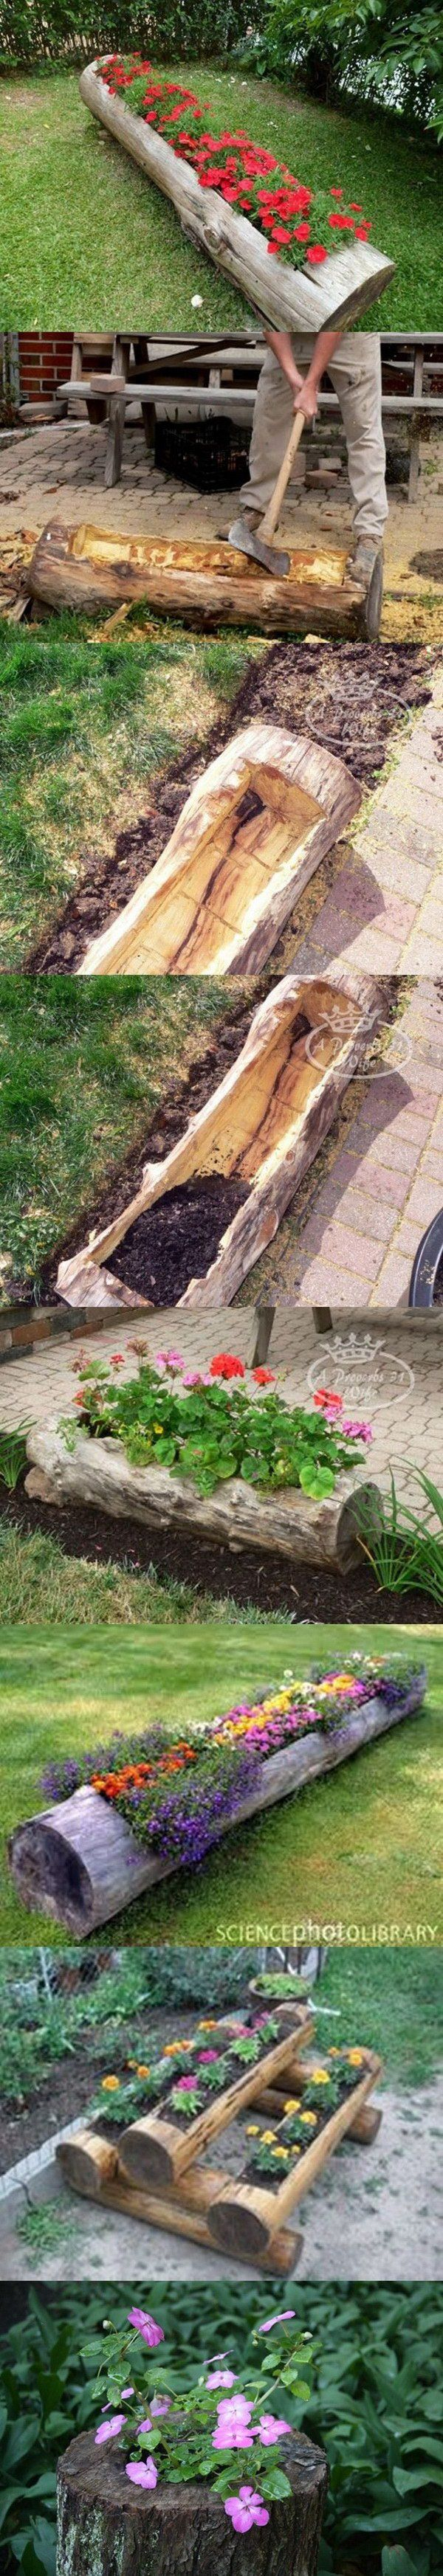 Make Beautiful Log Garden Planter | Home | Pinterest | Garden ...